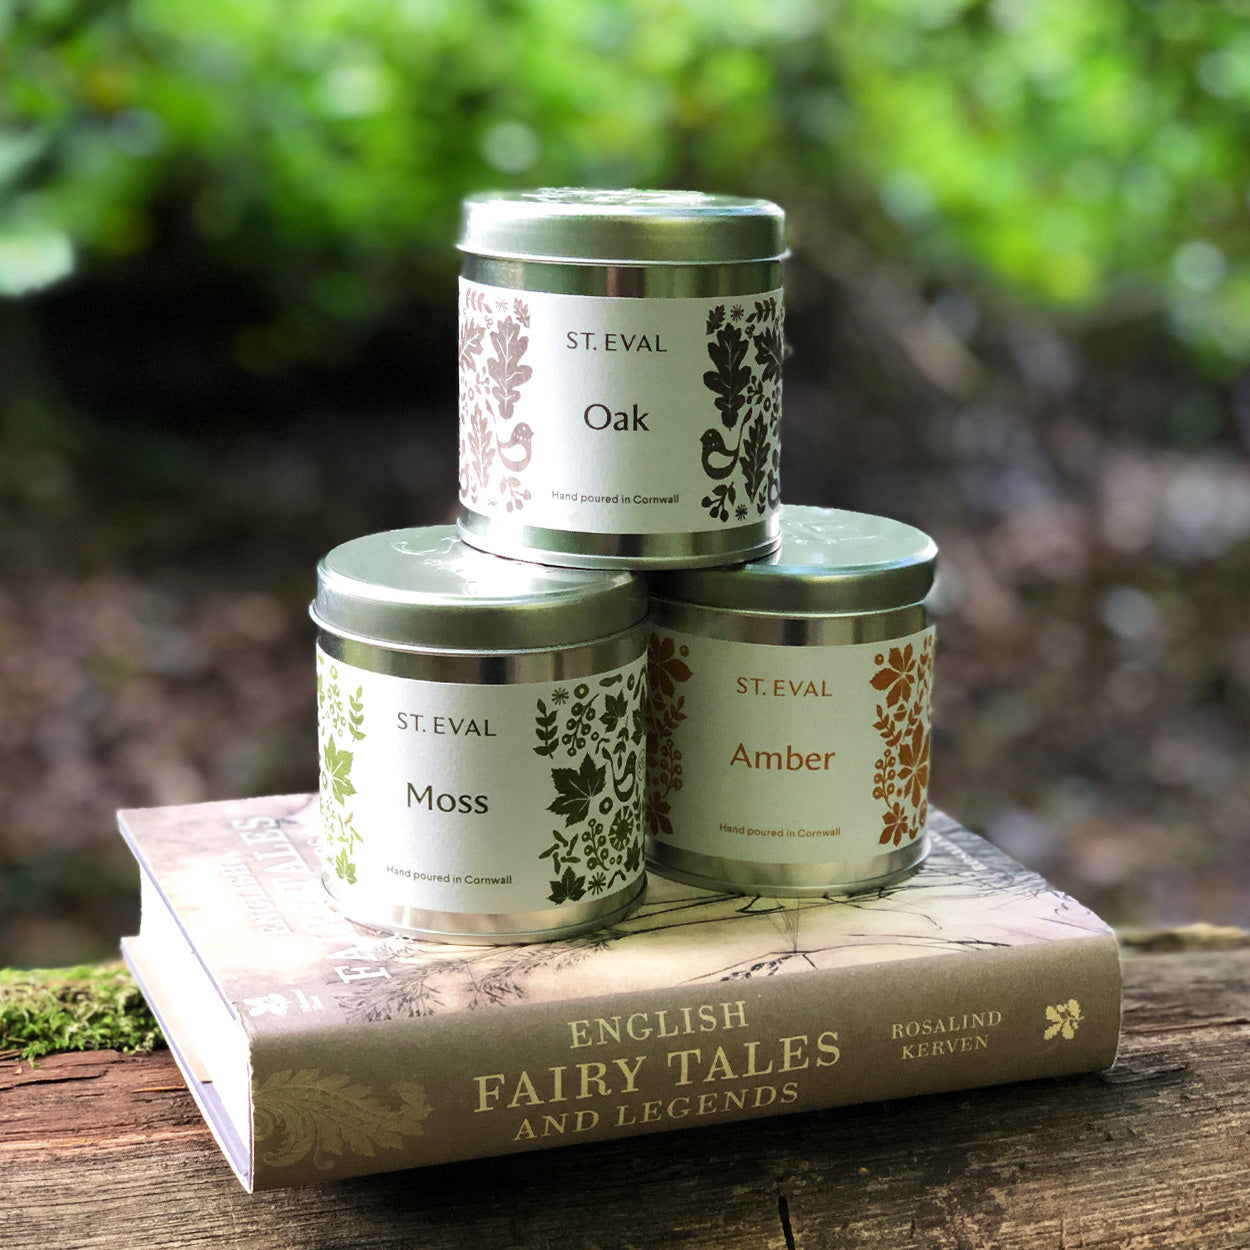 The collection of wild Oak, fresh Moss and honeyed Amber scented candles will engender great folk stories, awaken imaginations and stir creative souls.